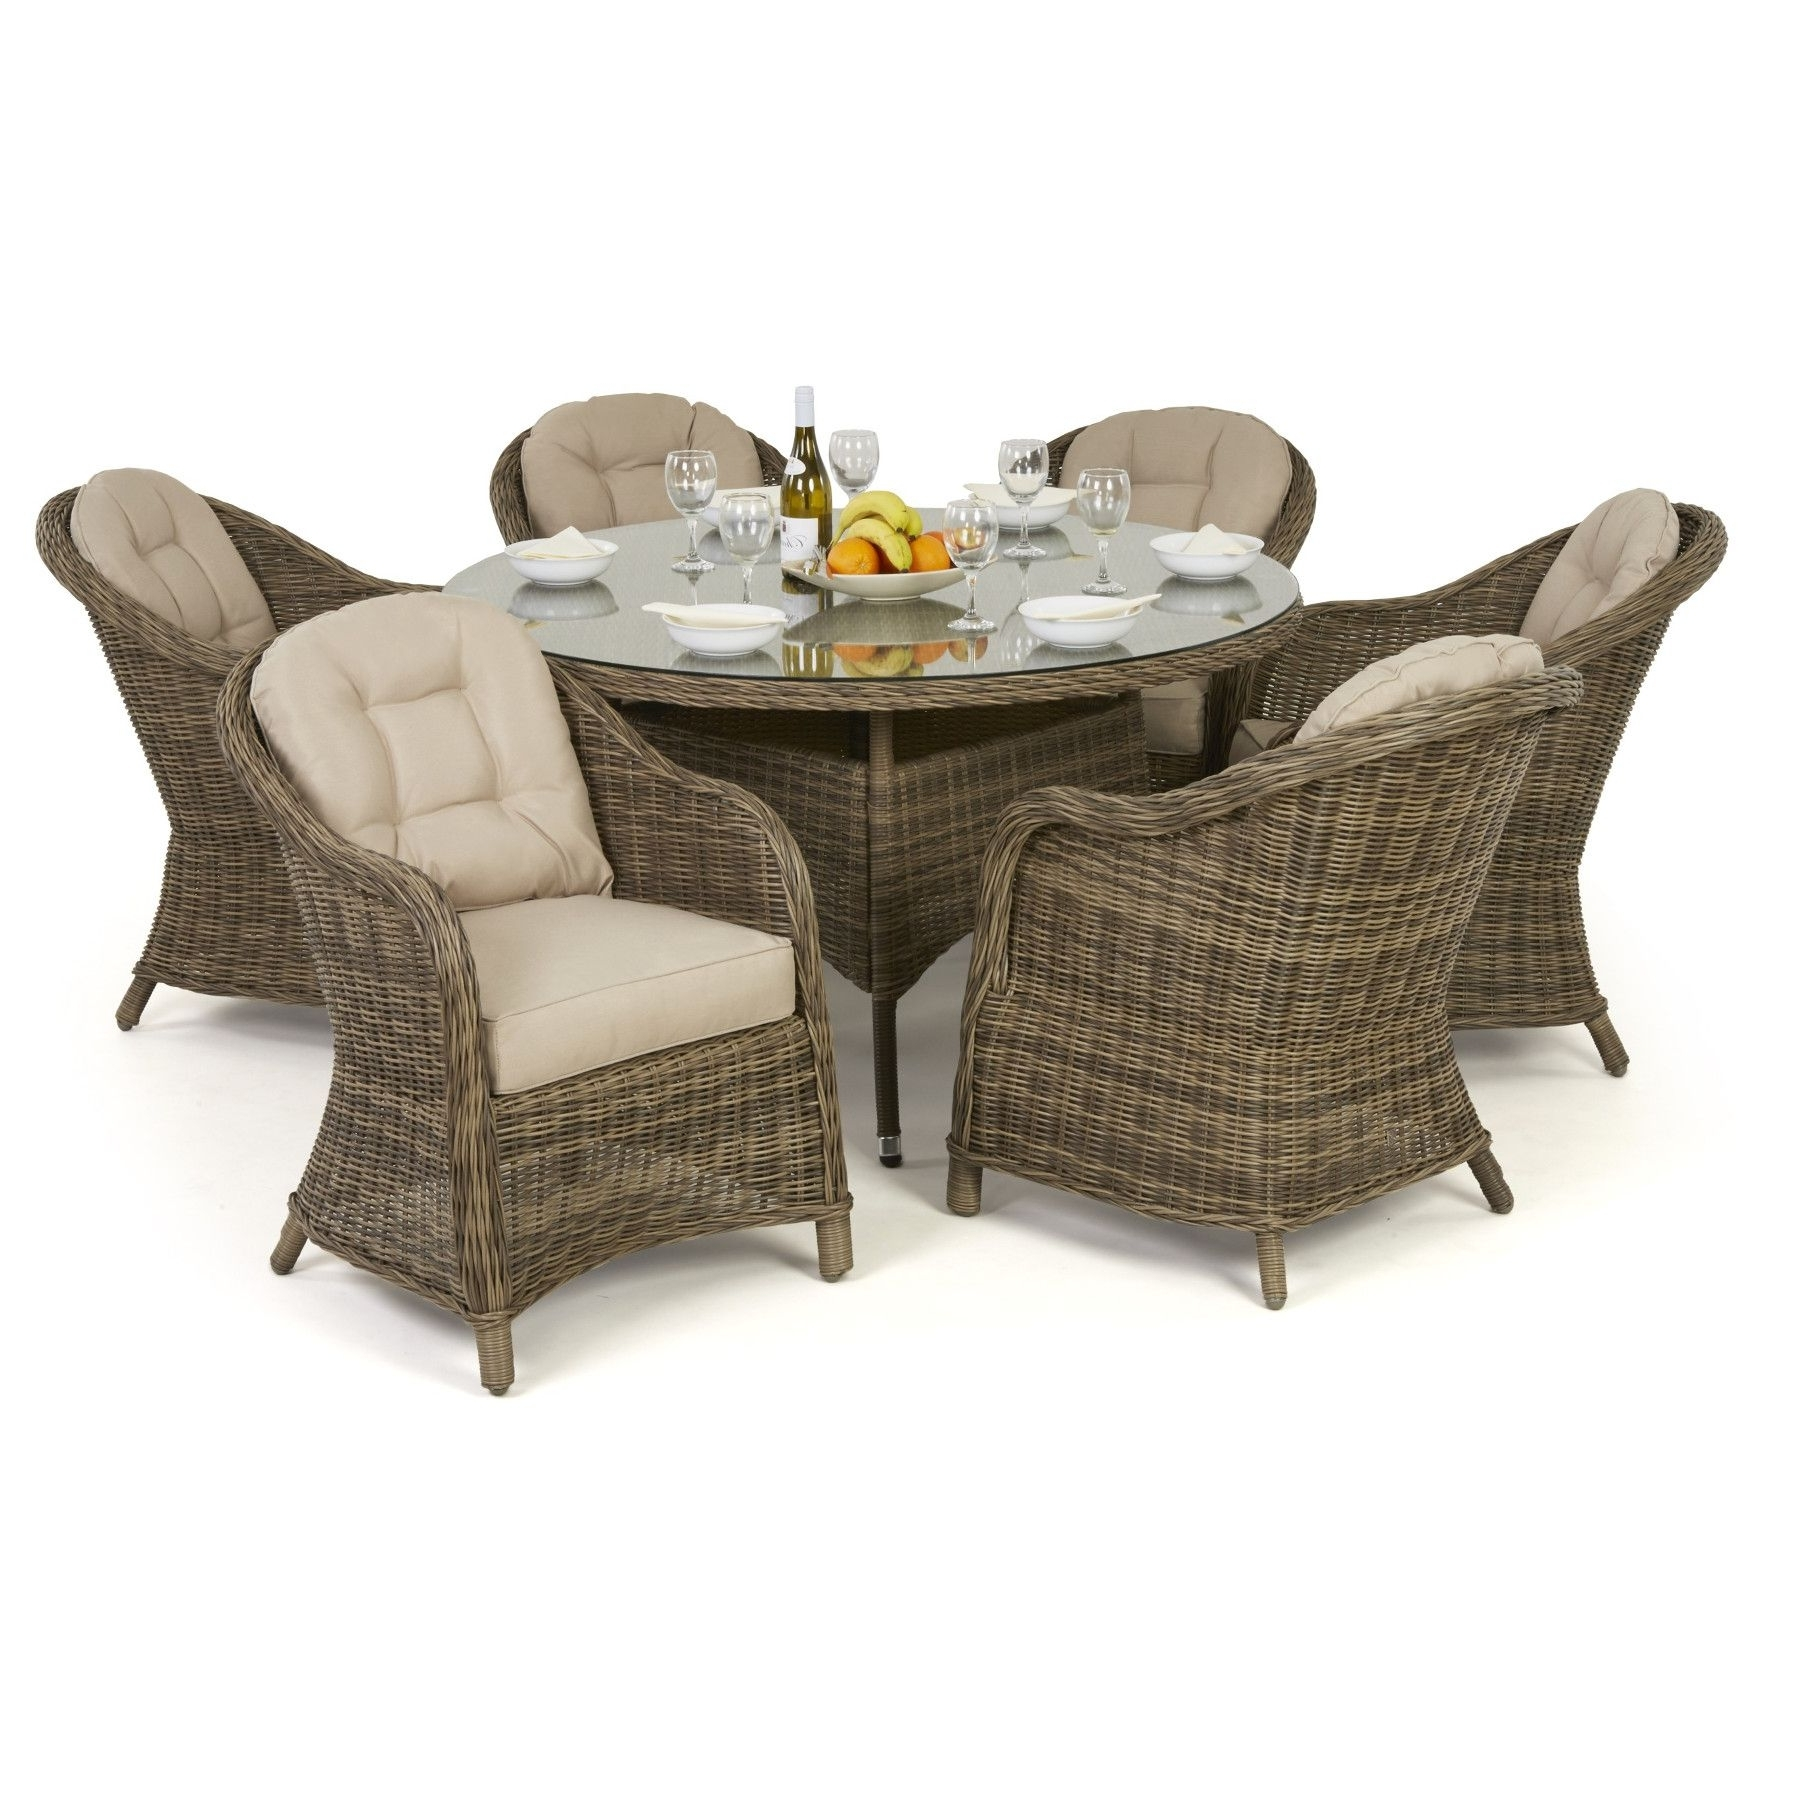 Maze Rattan Winchester Round Dining Table With 6 Round Chairs Garden In Well Known 6 Seat Round Dining Tables (View 18 of 25)